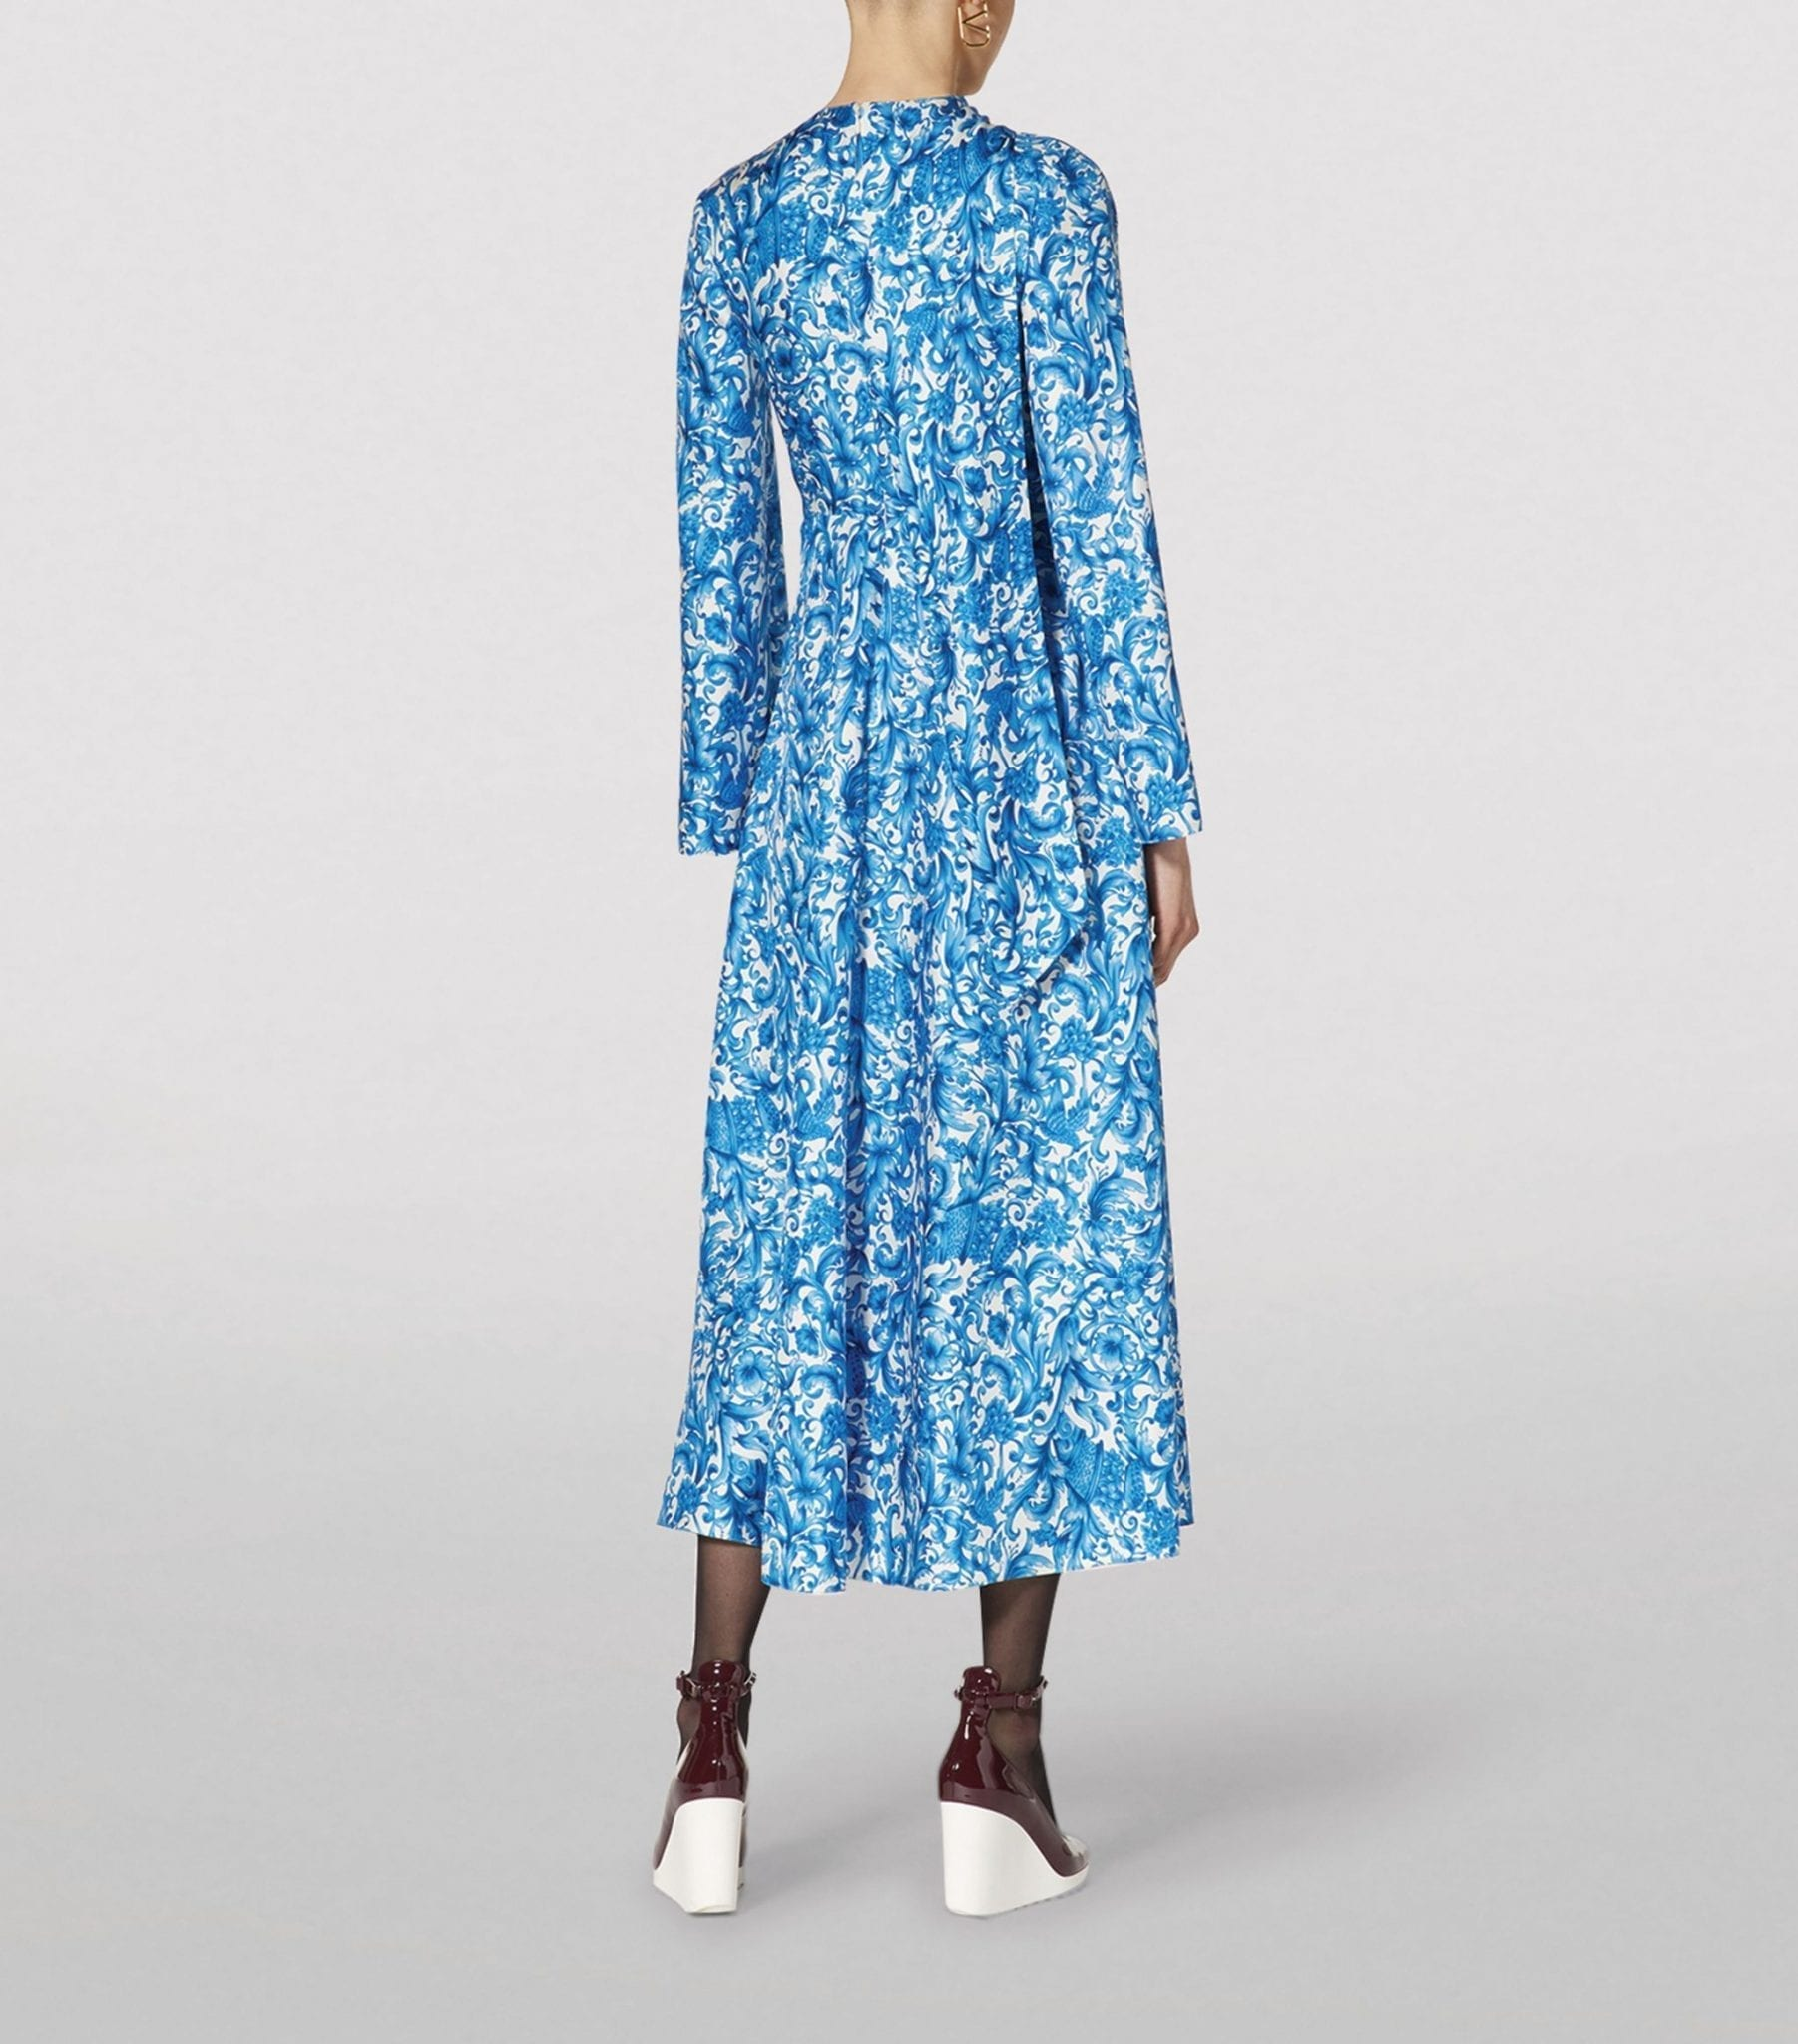 VALENTINO Azulejos Print Midi Dress